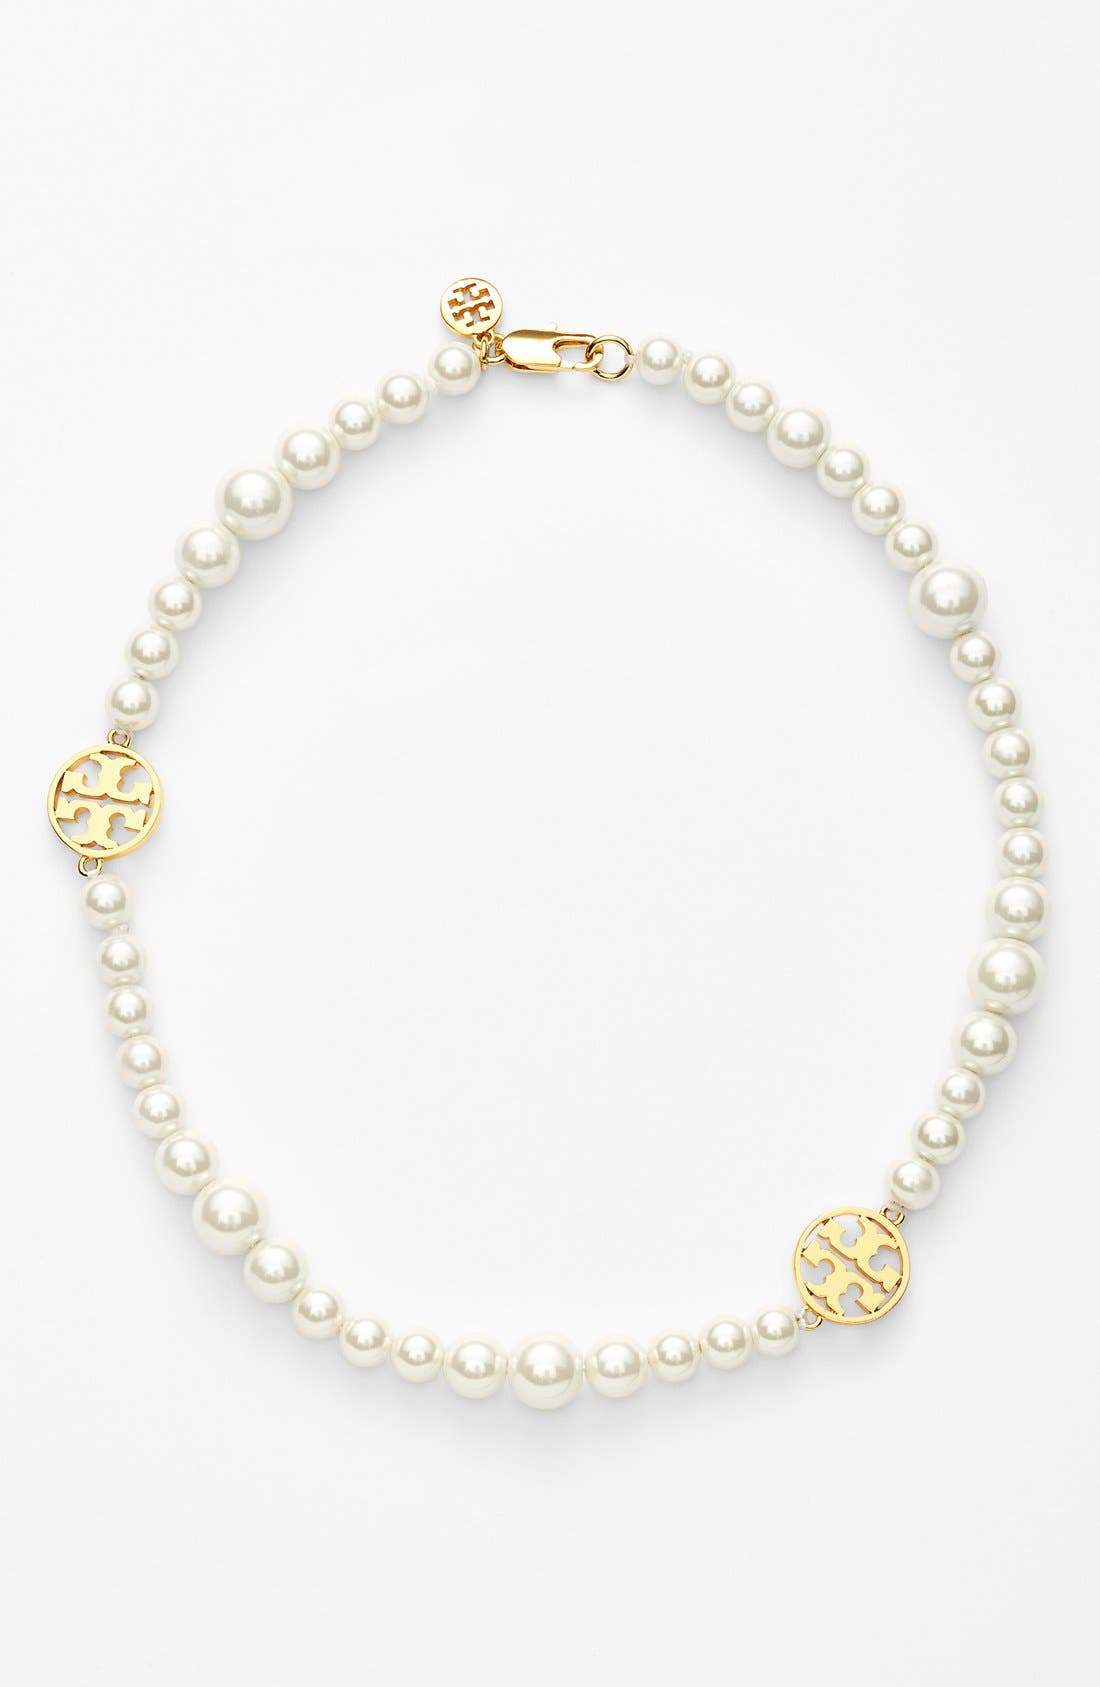 Main Image - Tory Burch 'Evie' Logo & Glass Pearl Collar Necklace